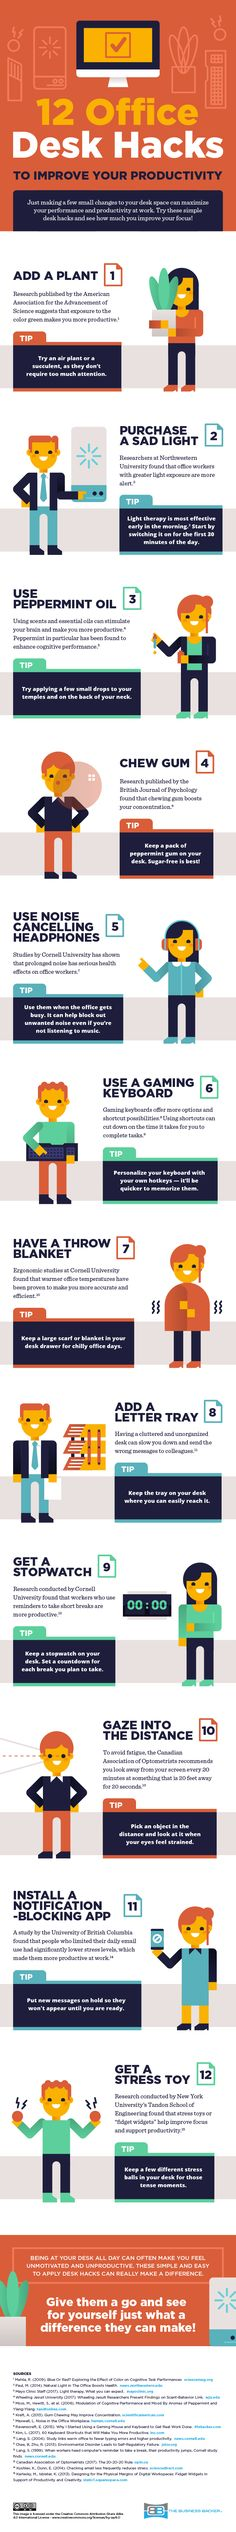 12 Office Desk Hacks to Improve Your Productivity (Infographic)